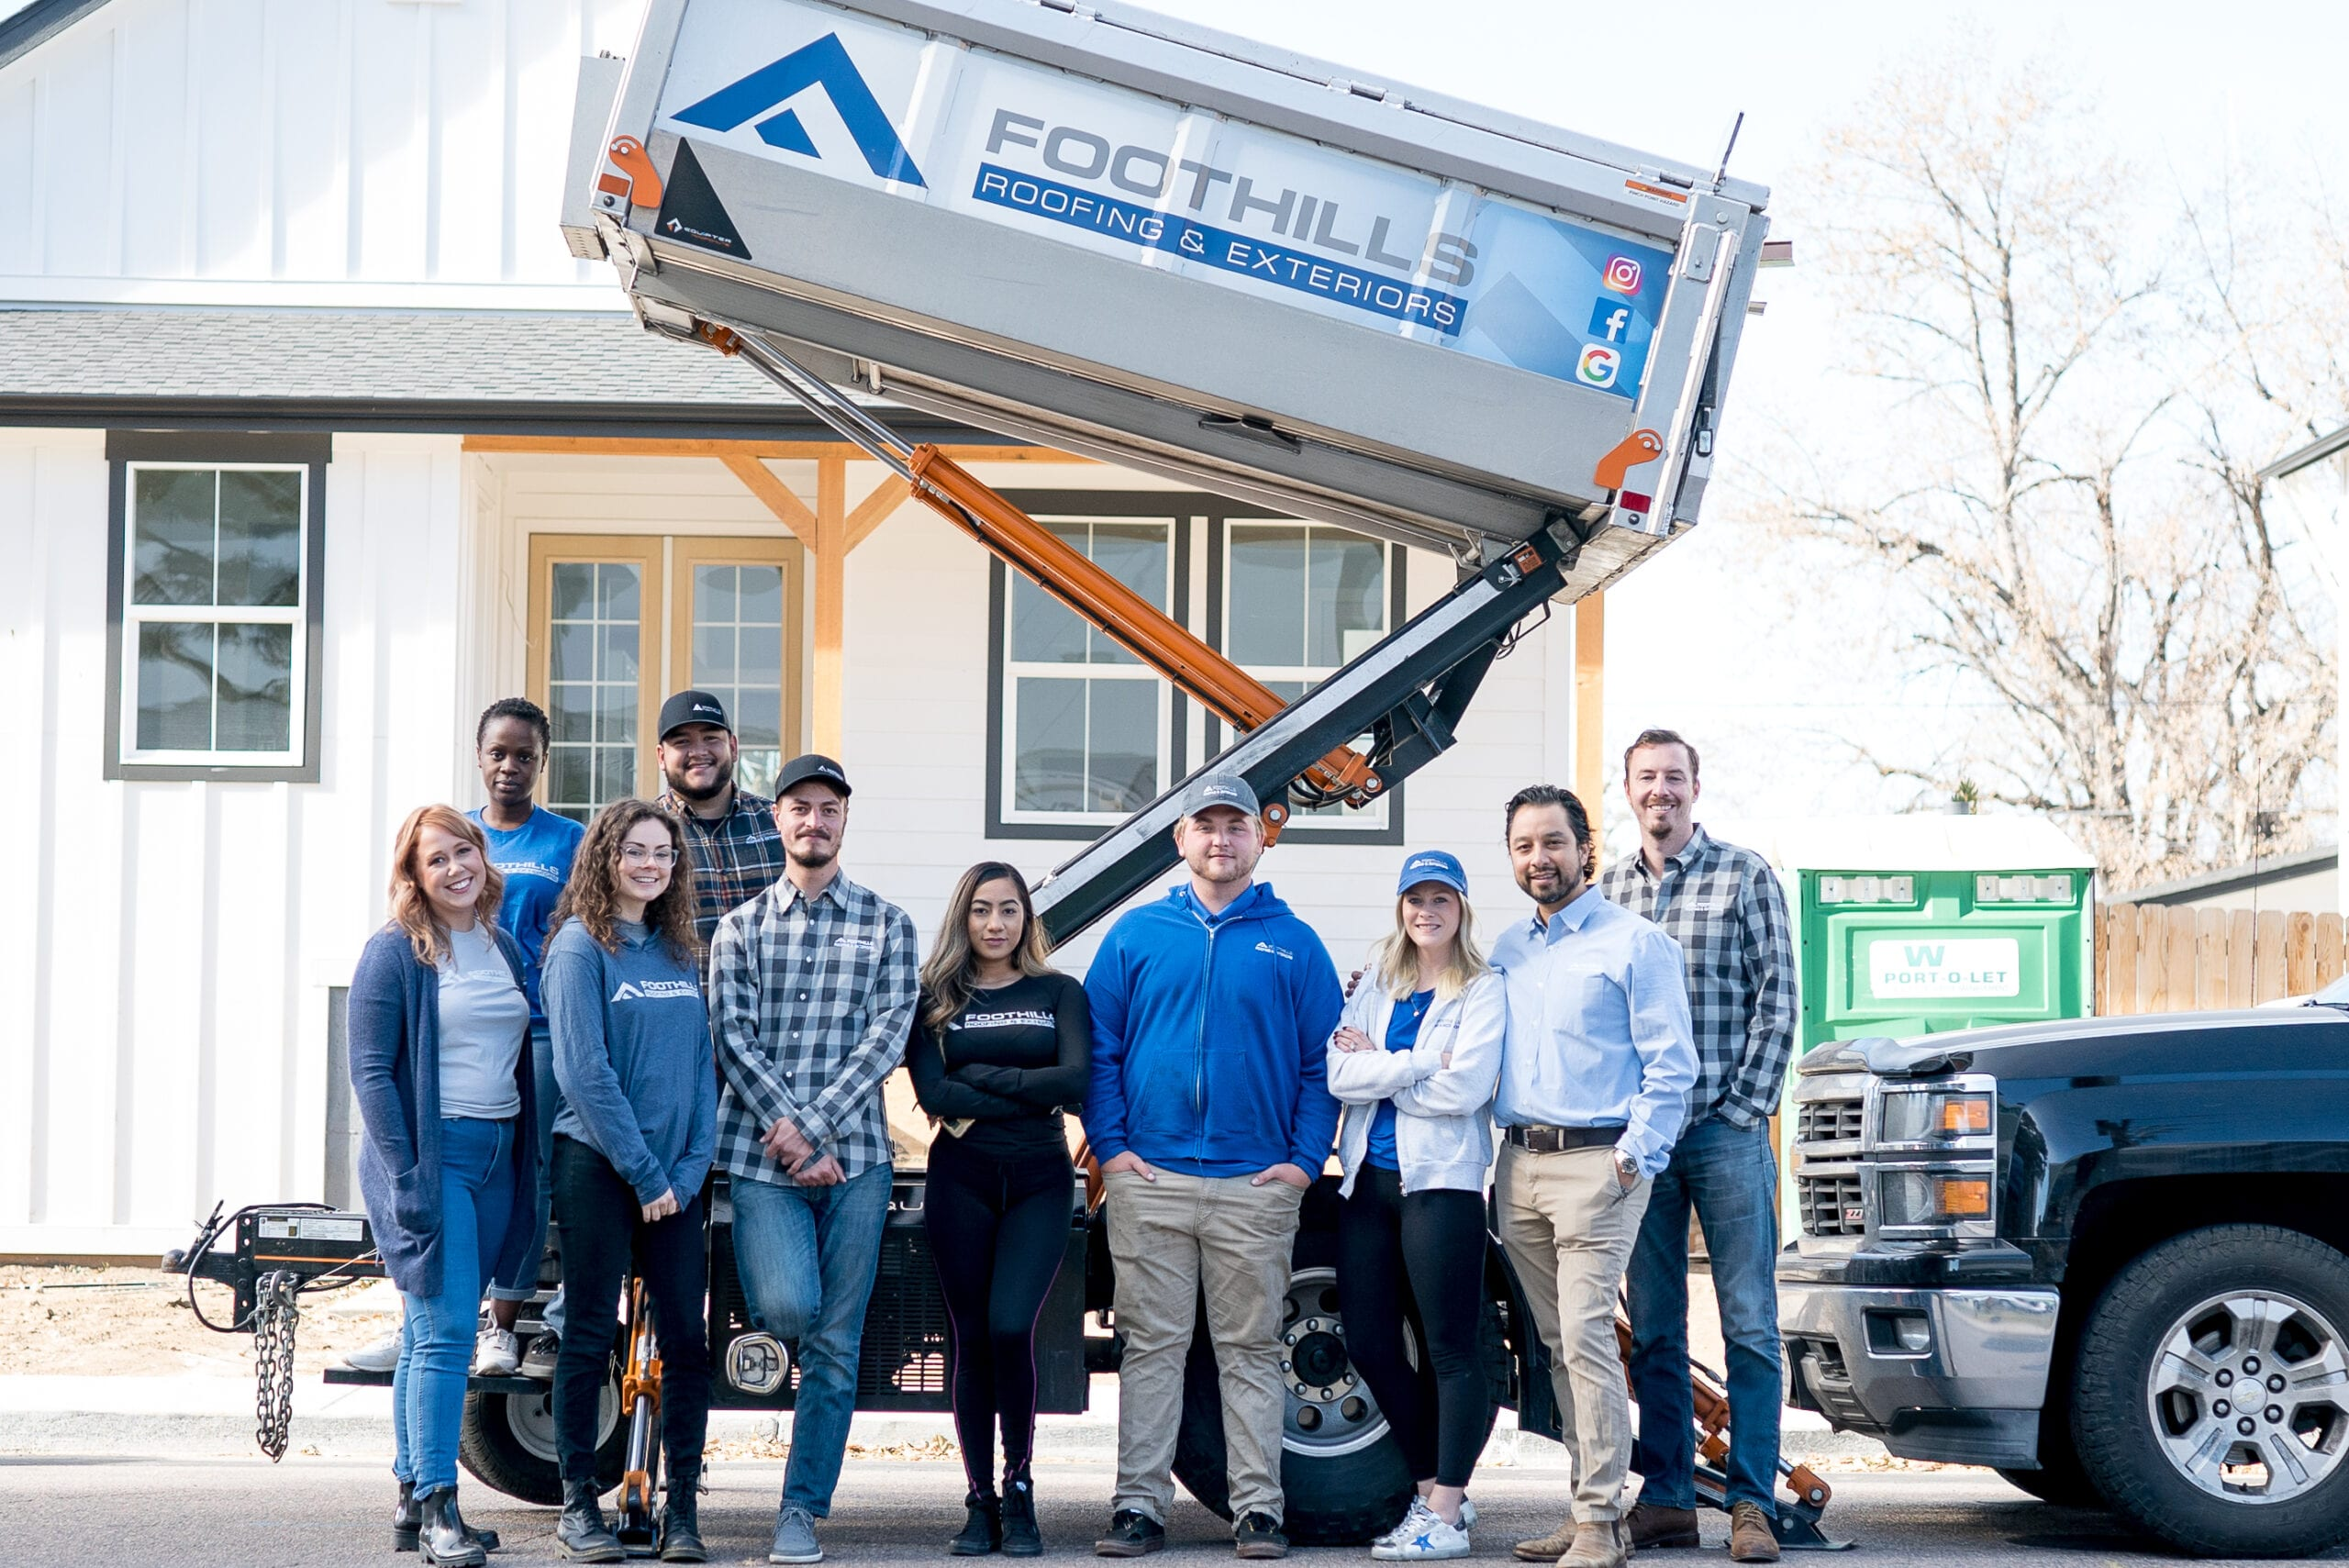 The Foothills Roofing & Exteriors Crew poses for a company photo.